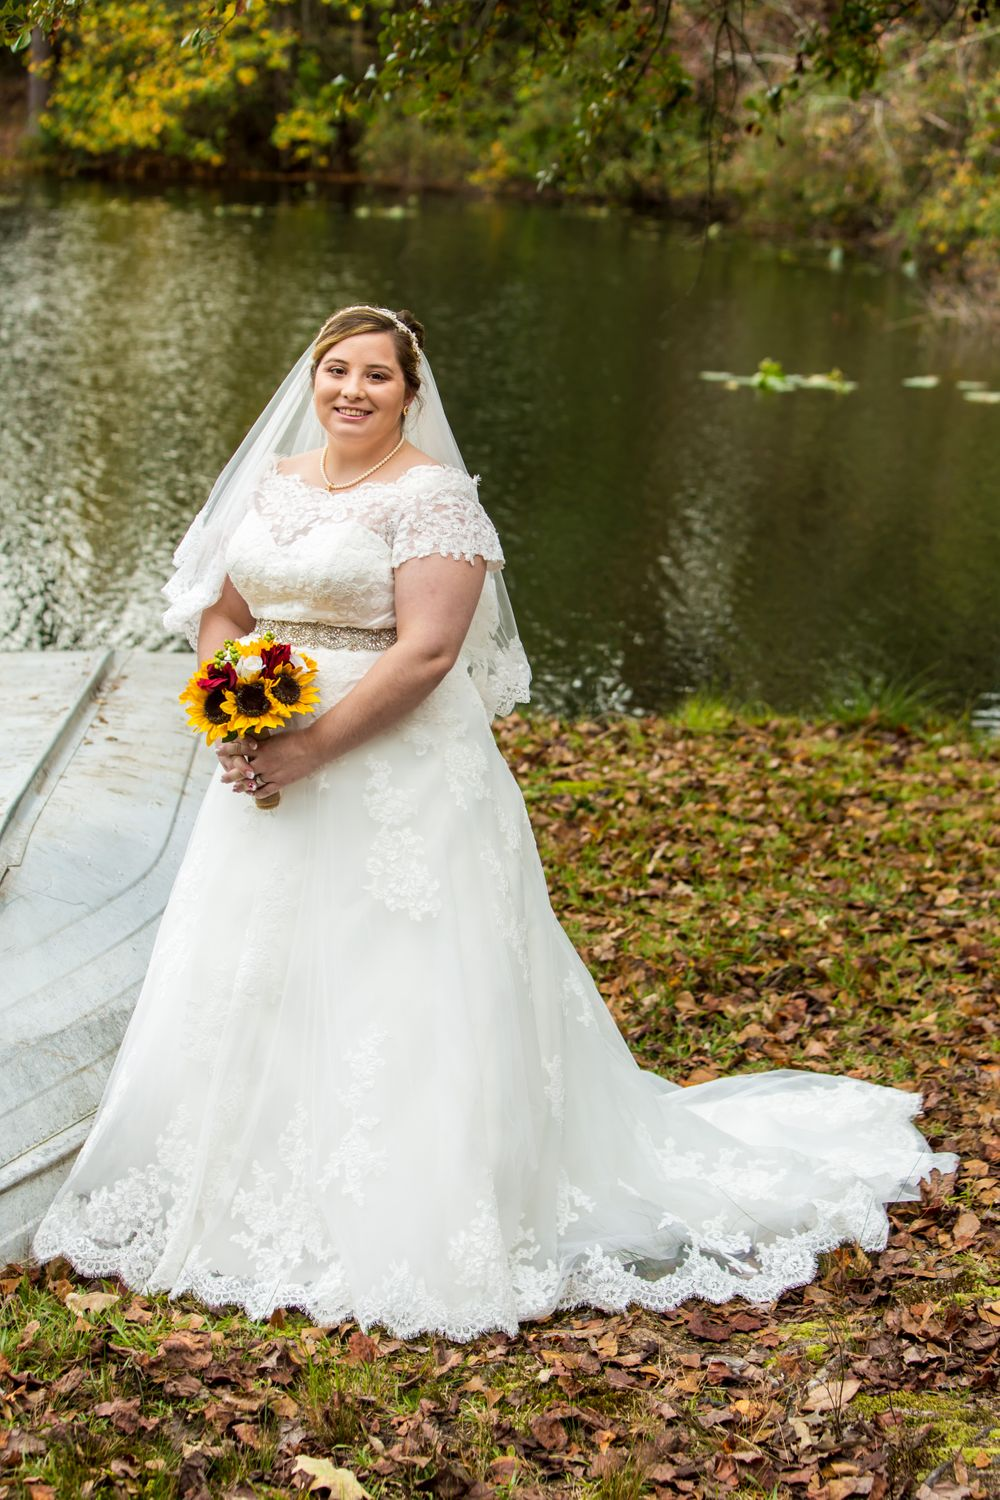 Bride Becca poses for her bridal portrait at the pond before a wedding at T&S Farm in Leesville, SC